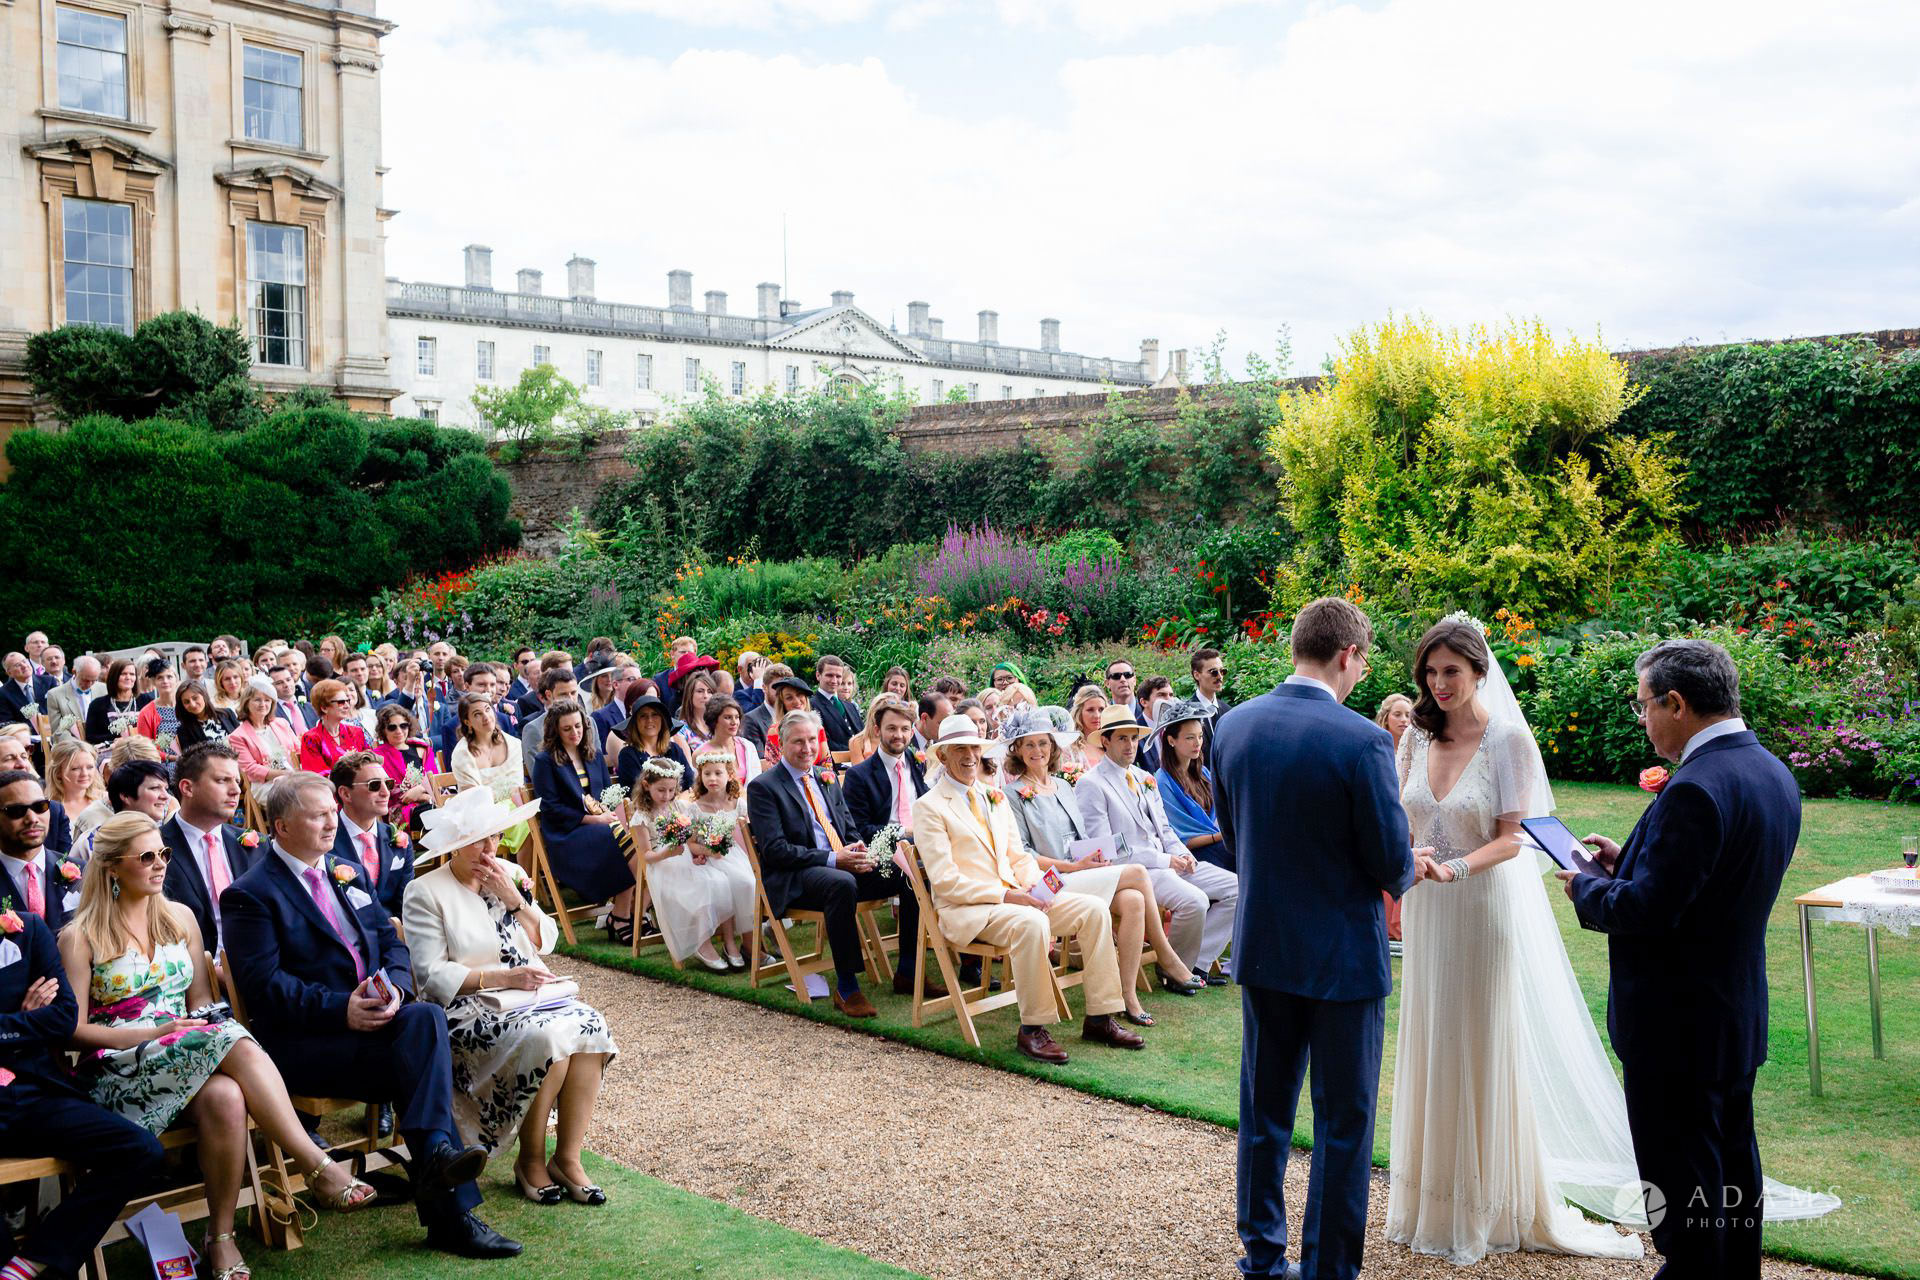 Clare College wedding view of the vedding ceremony and guests